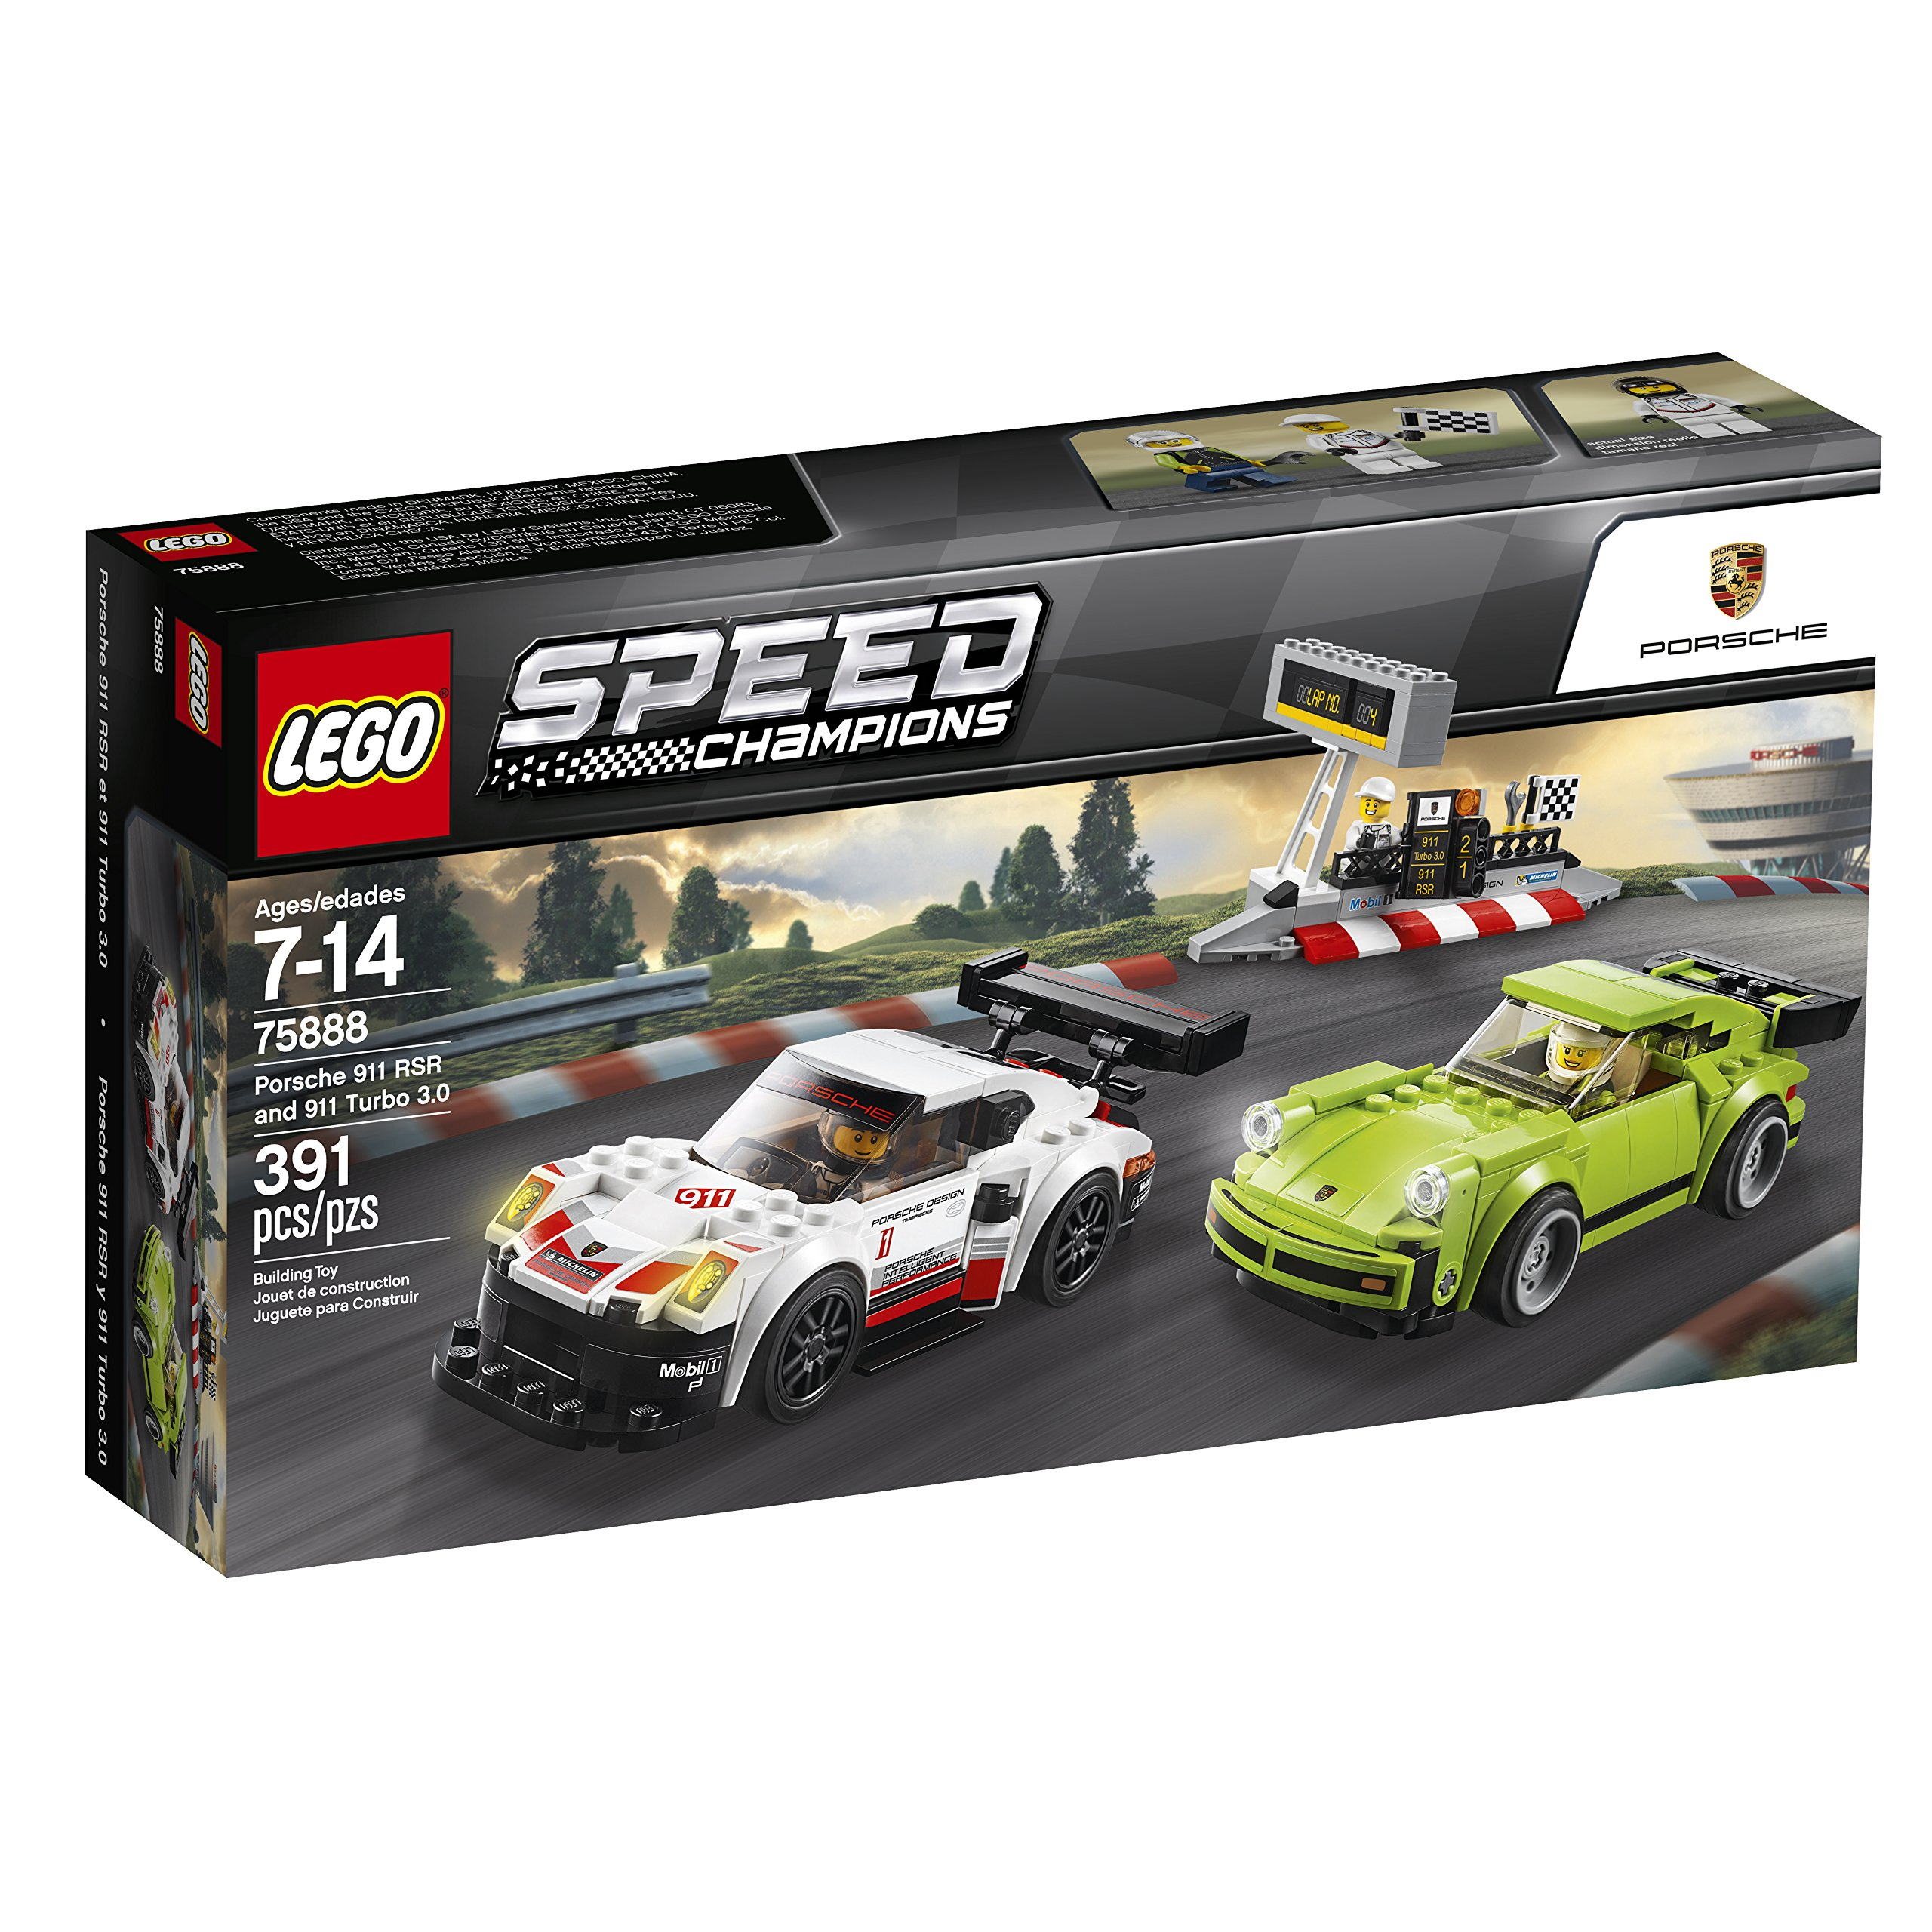 LEGO Speed Champions Porsche 911 RSR and 911 Turbo 3.0 75888 Building Kit (391 Piece) by LEGO (Image #8)